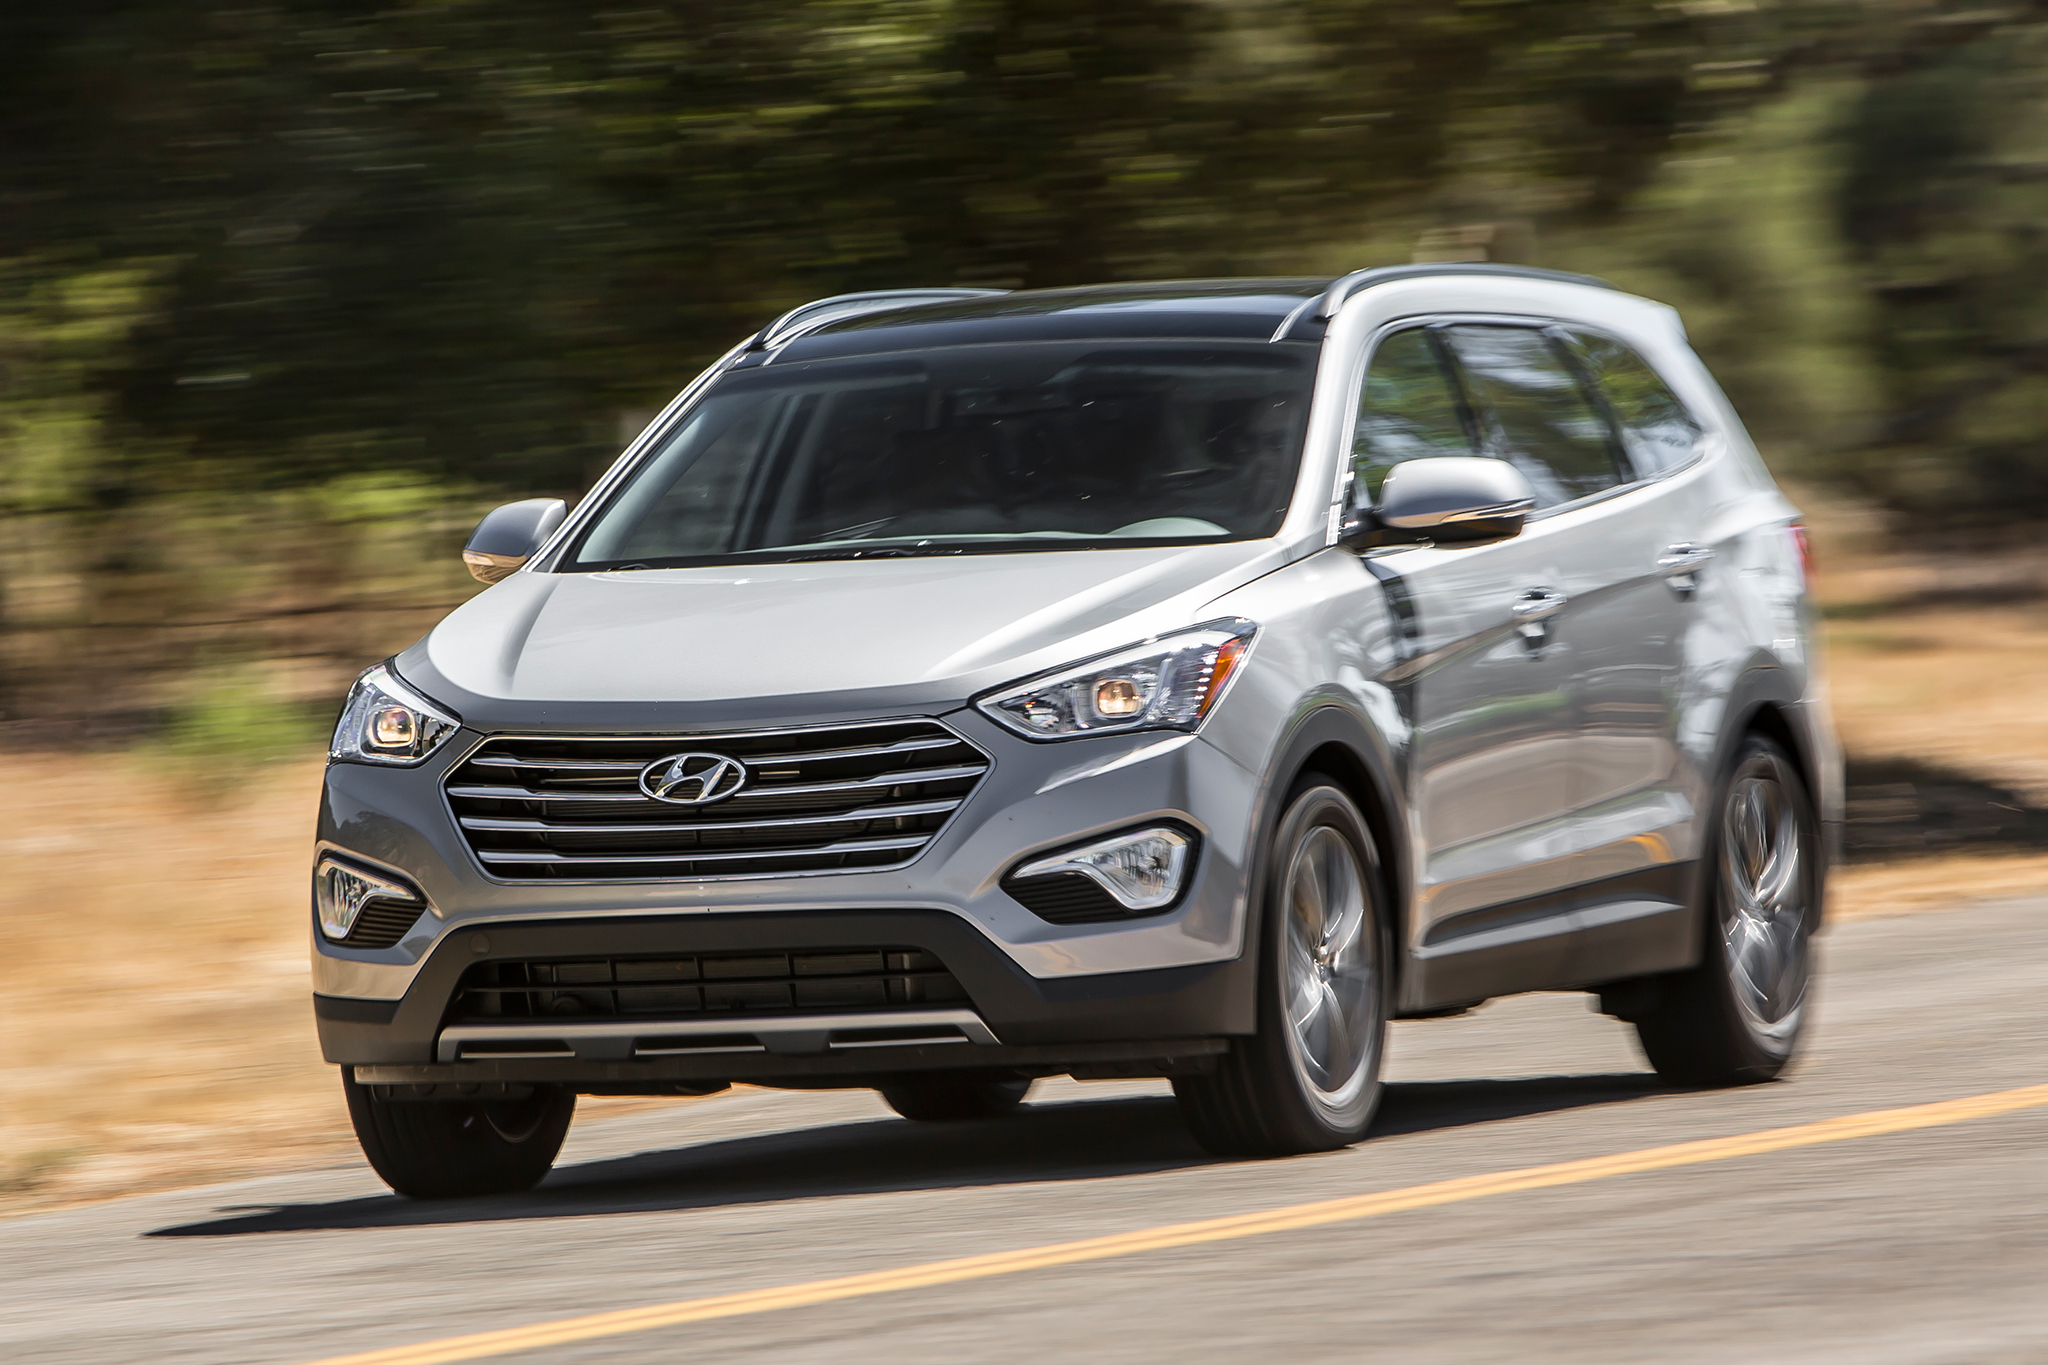 2014 Hyundai Santa Fe Limited For Sale >> 2014 Hyundai Santa Fe Limited Awd First Test Motortrend